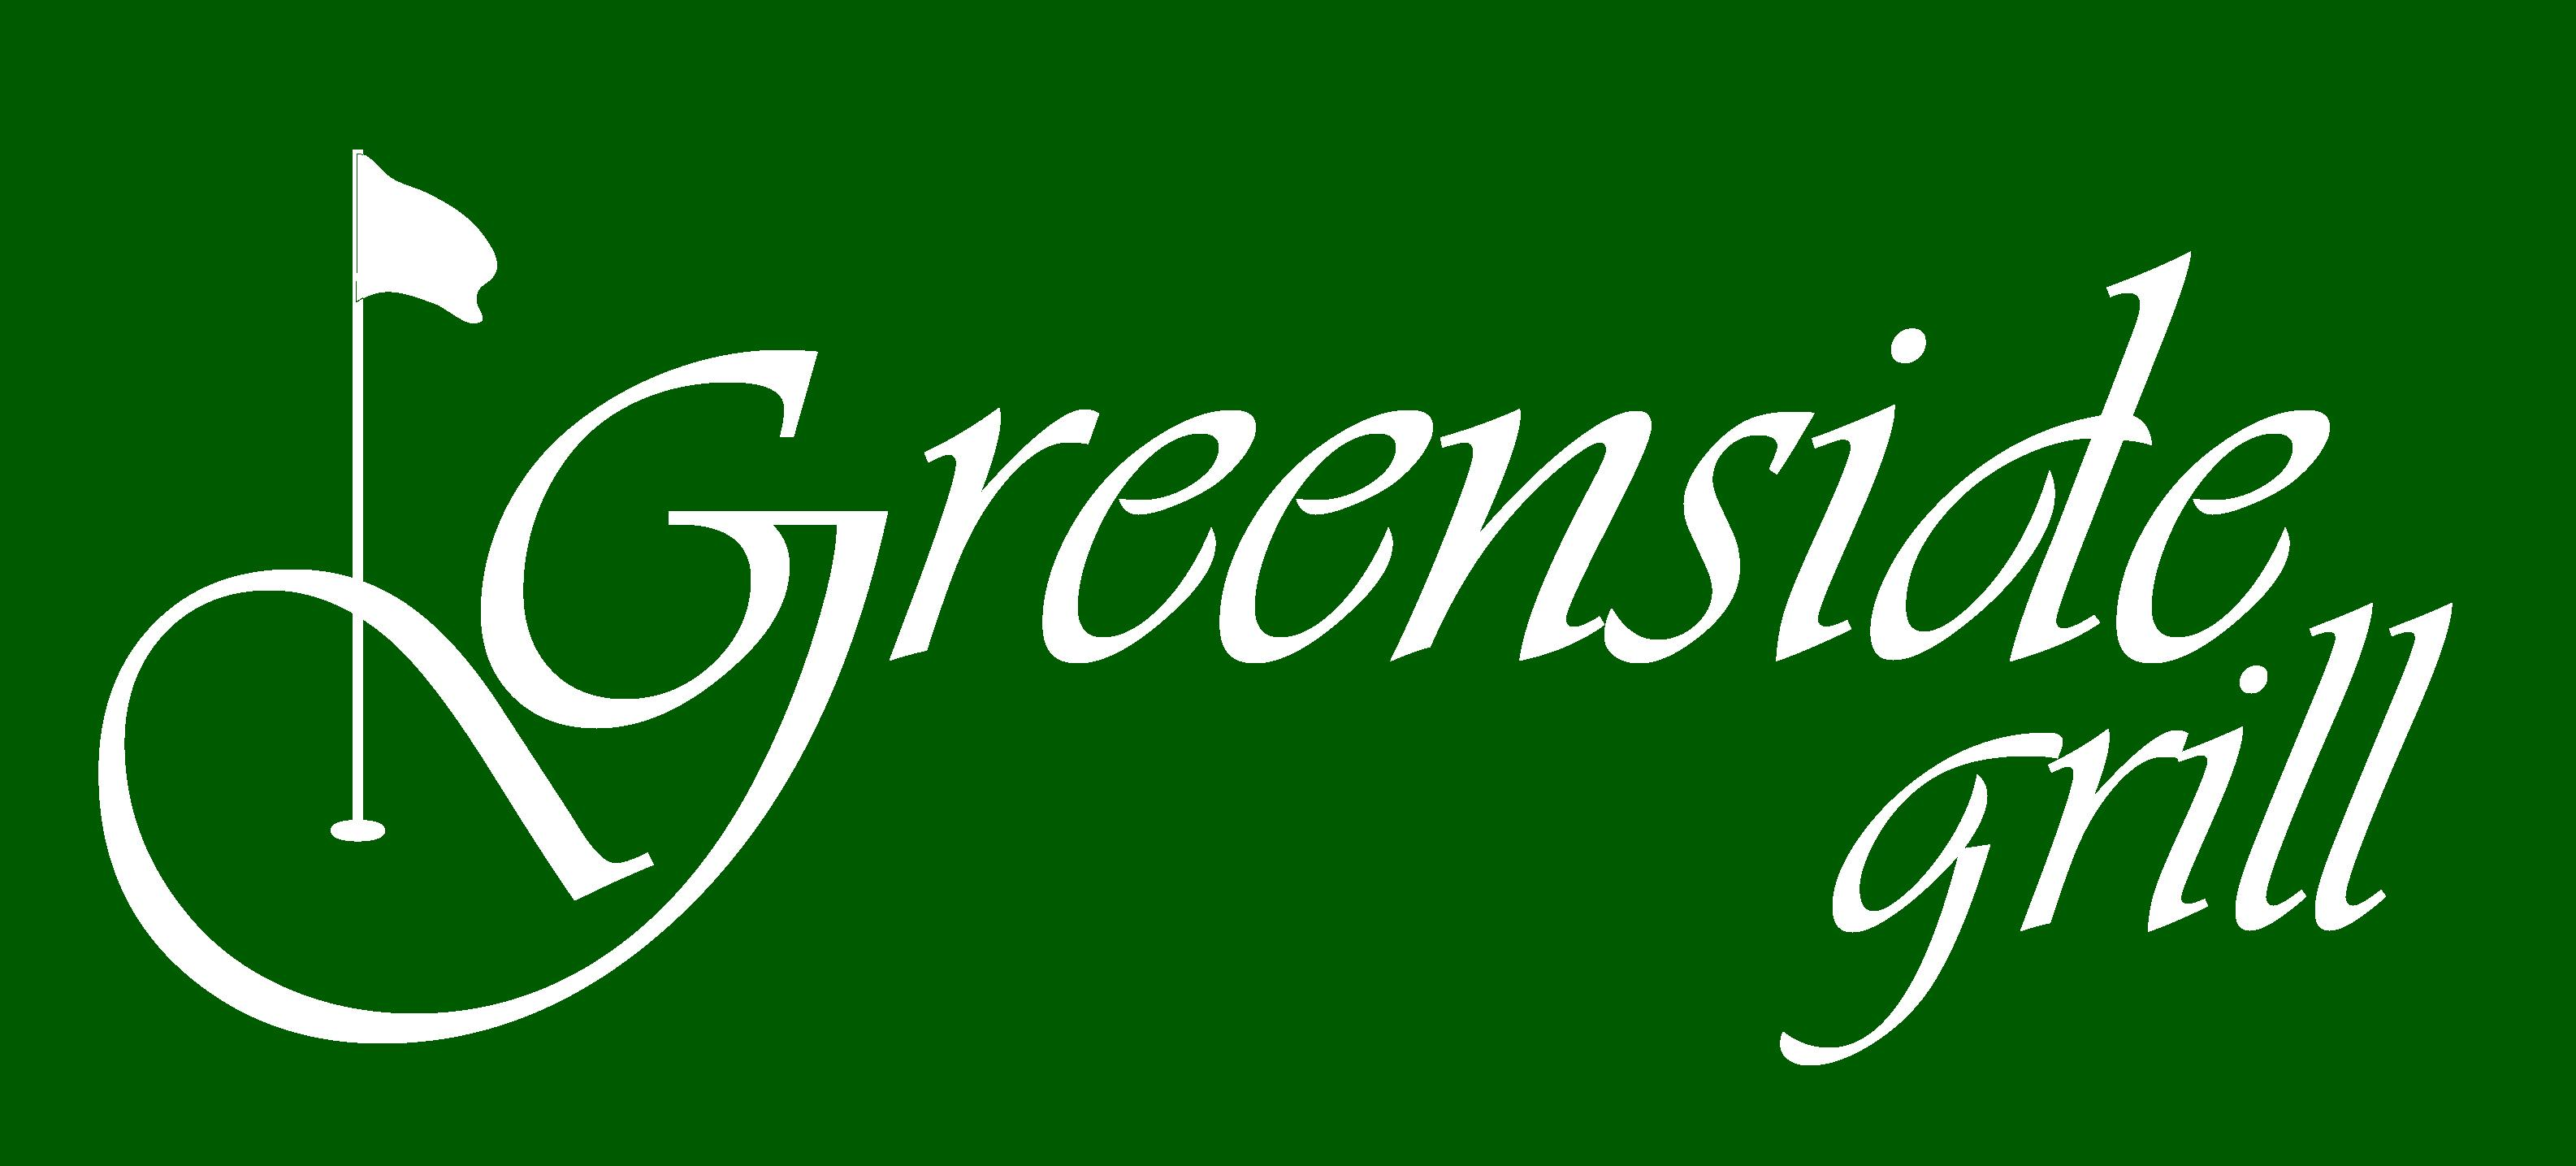 GreensideGrill-logo-White-on-Green